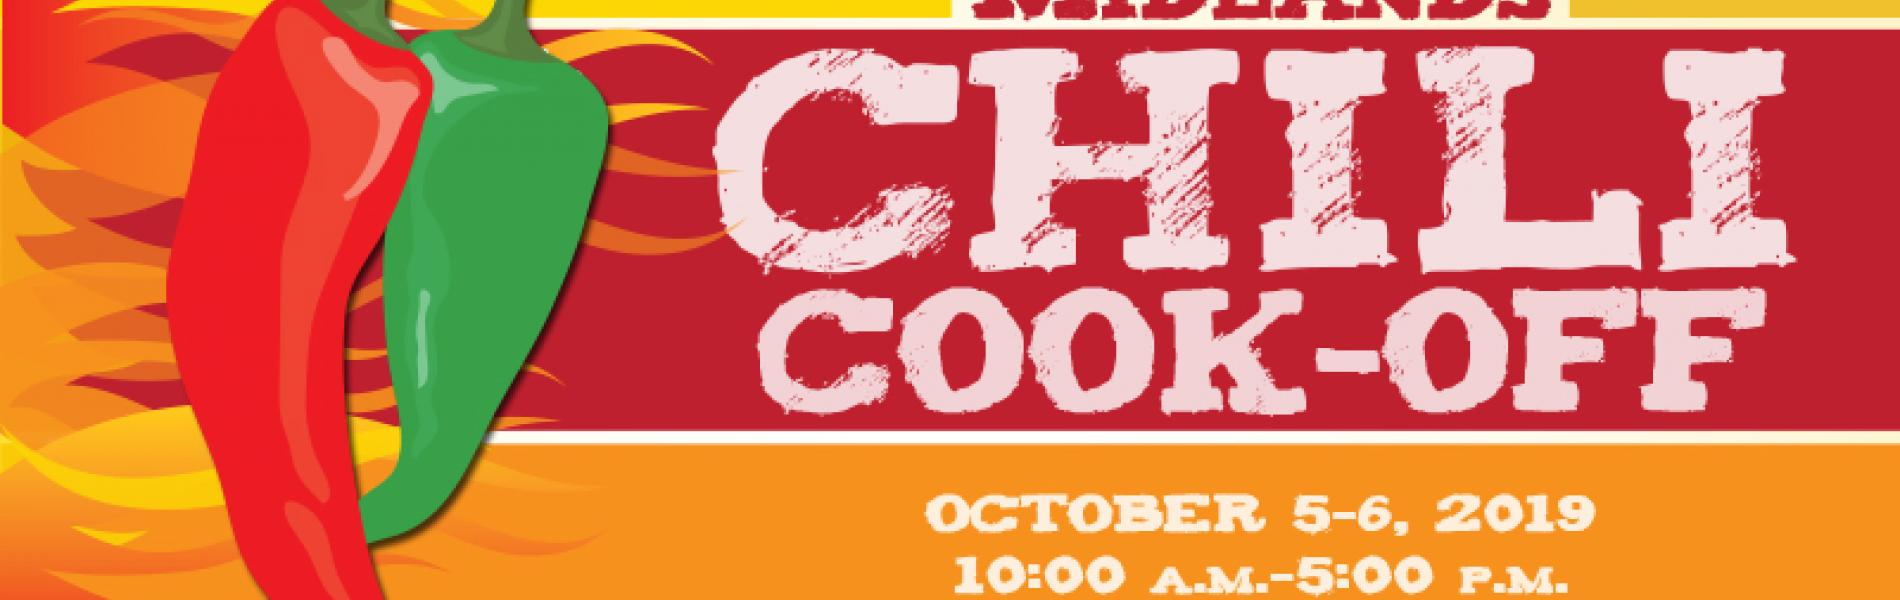 Chili Cookoff Logo